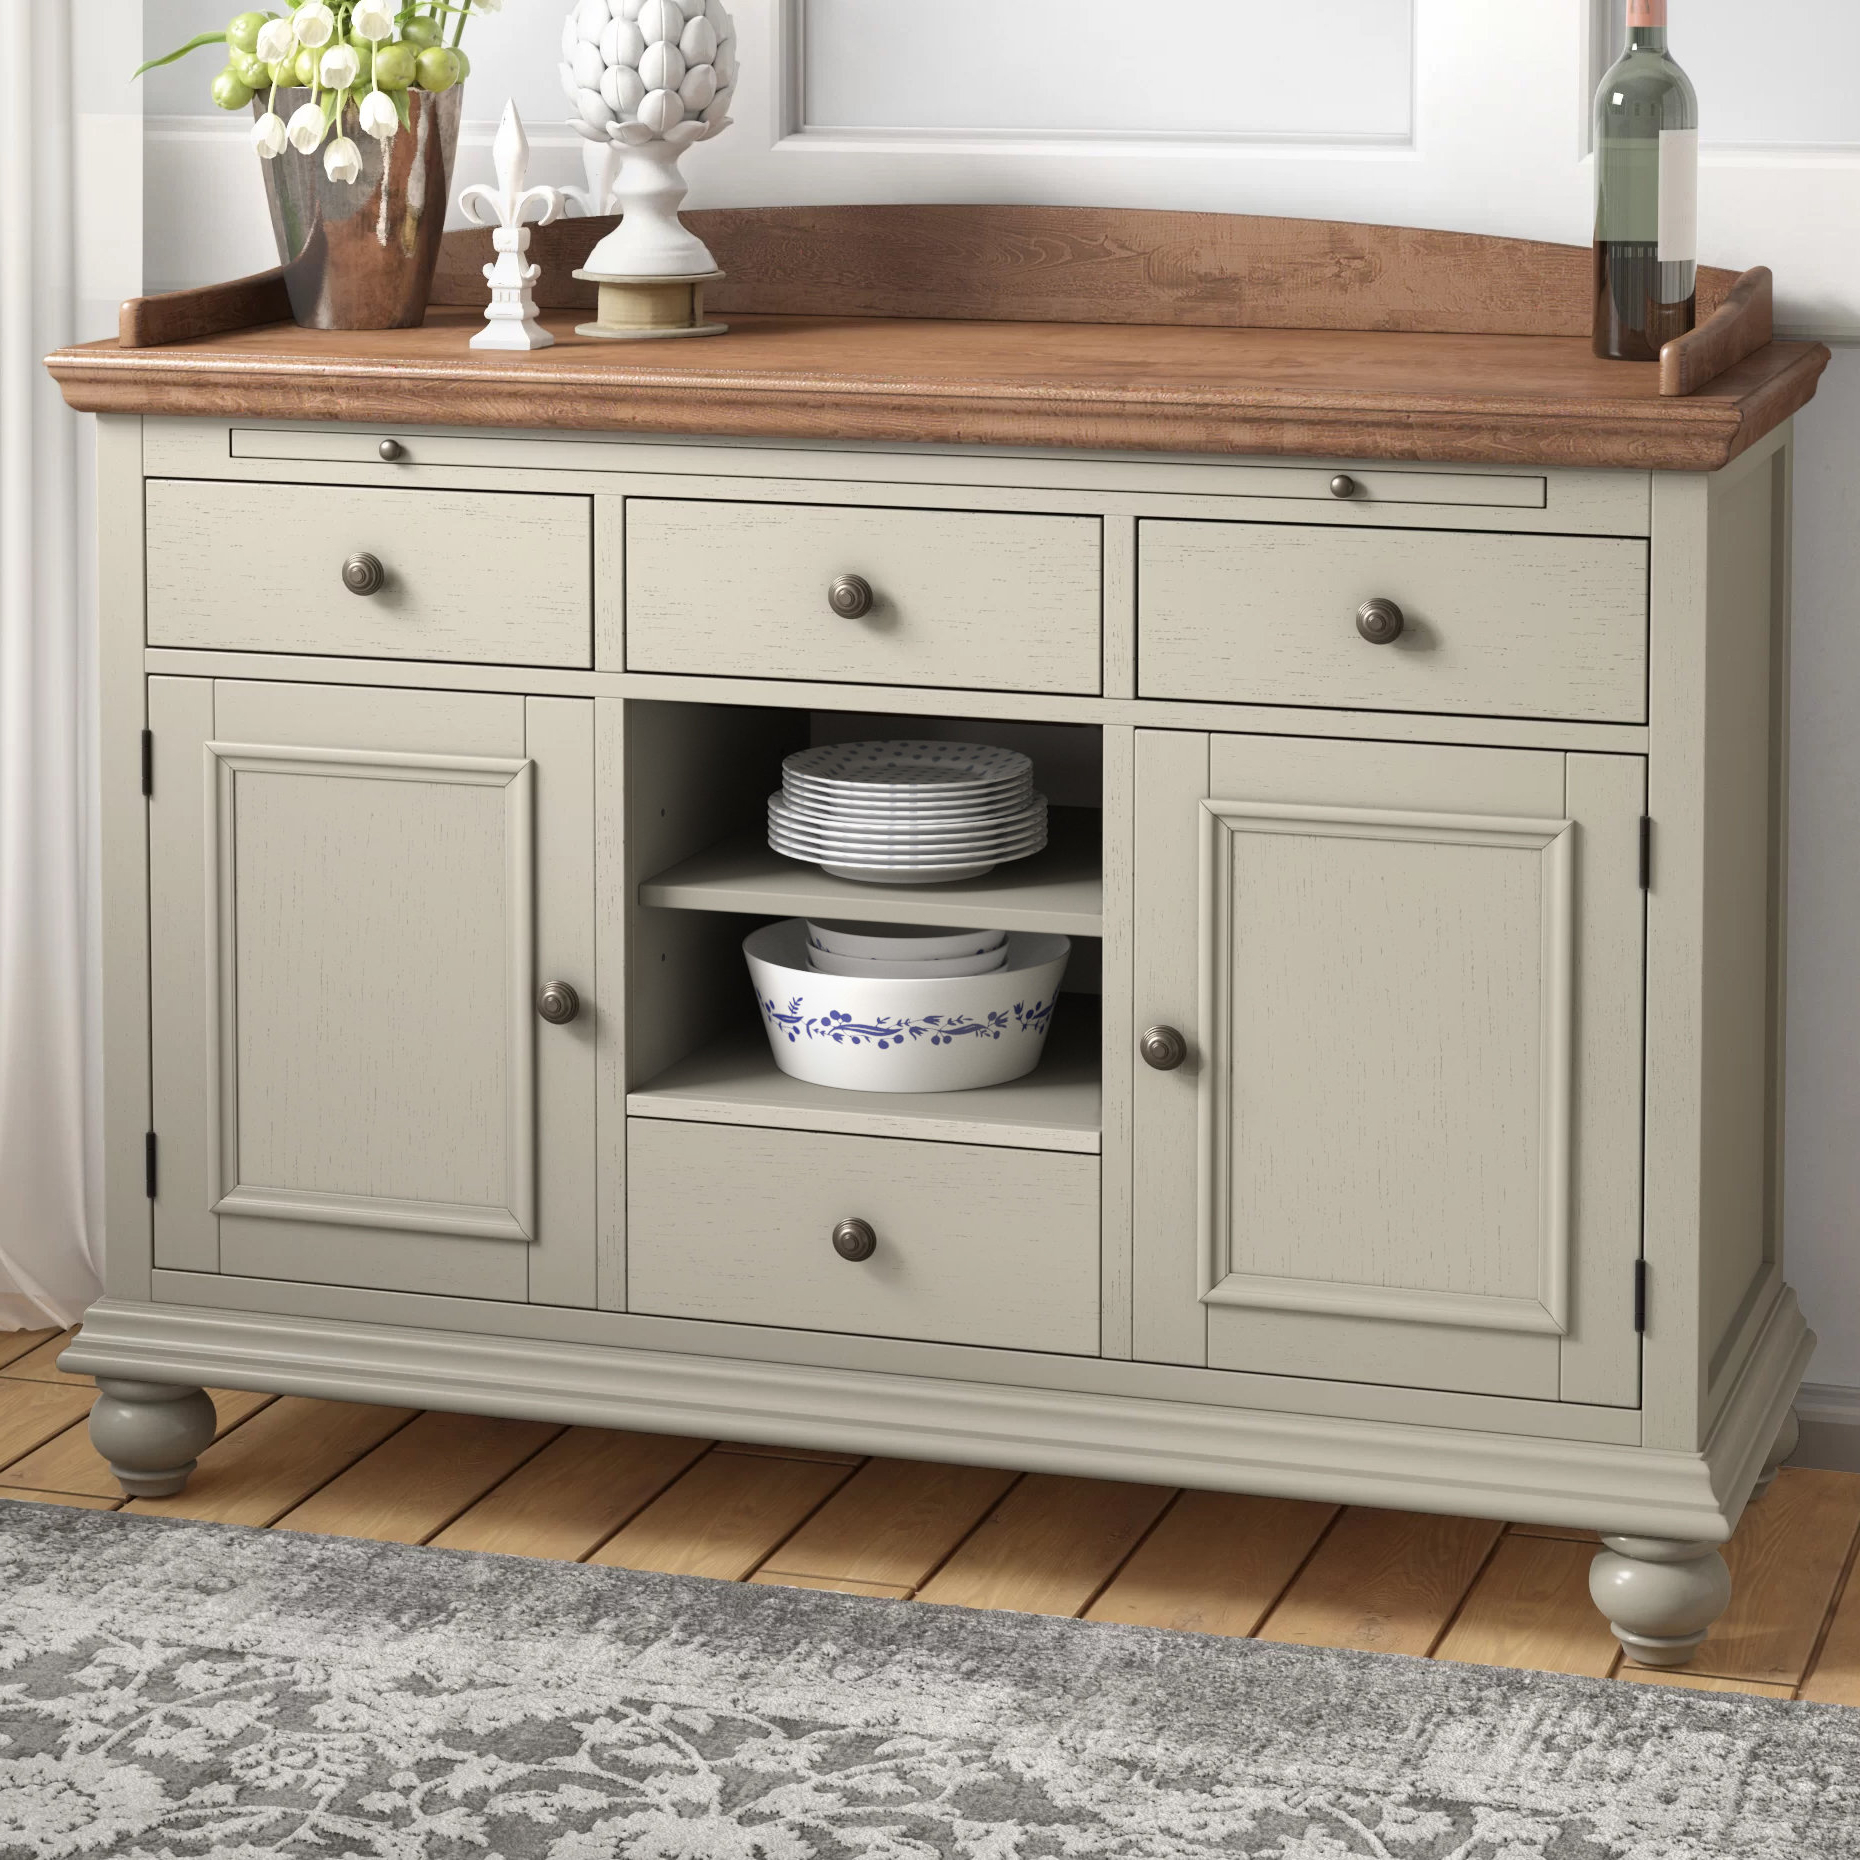 Most Recent Ruskin Sideboards With Regard To Ruskin Sideboard (Gallery 1 of 20)